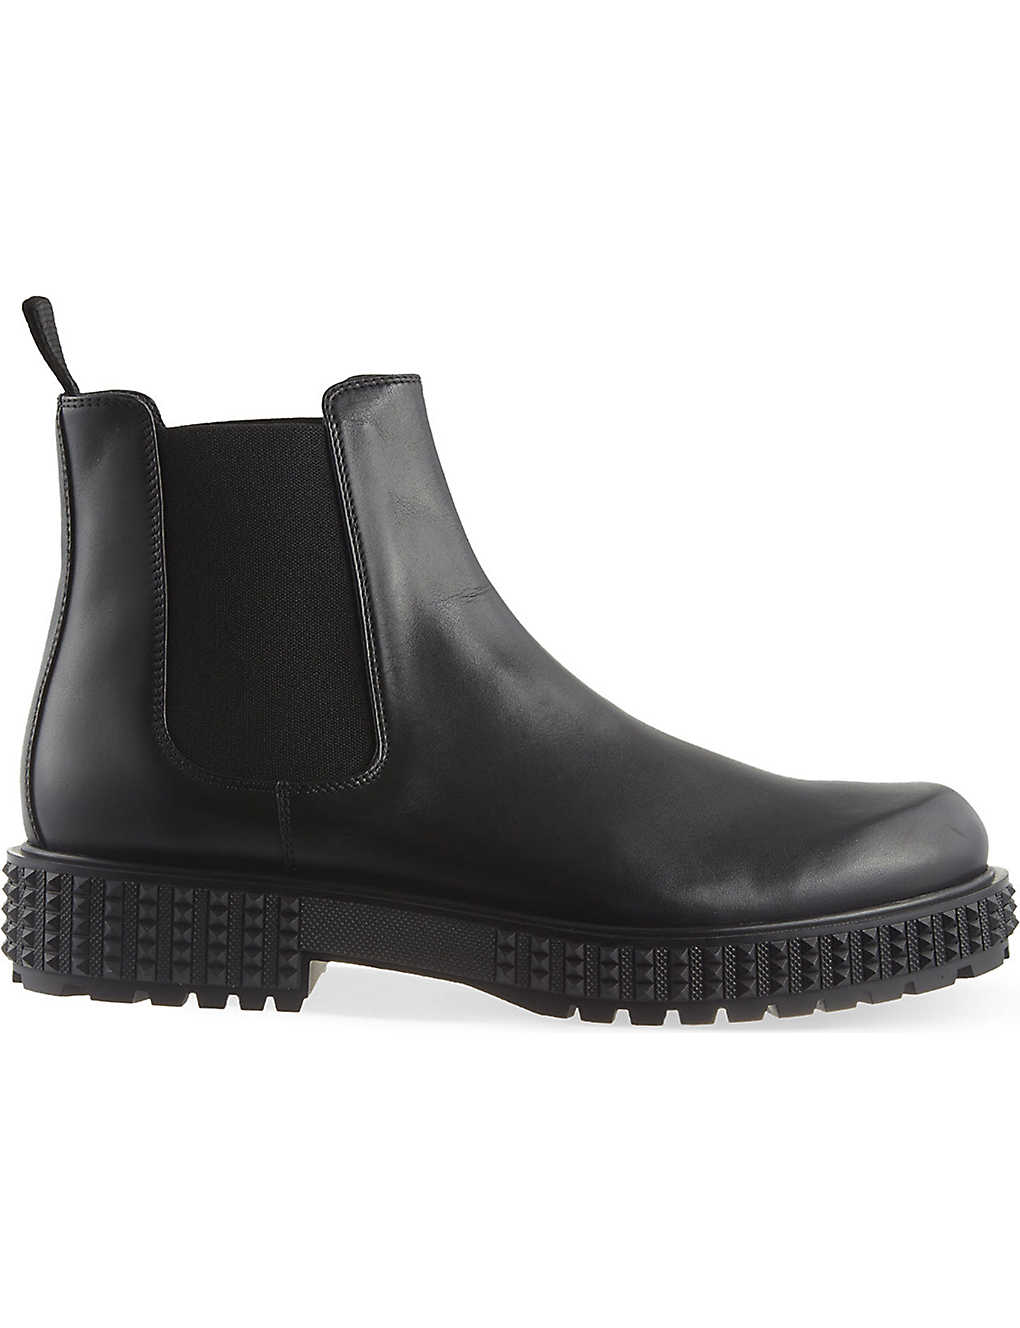 701a8f02ebb05 VALENTINO - Punky-ch Beatle leather Chelsea boots